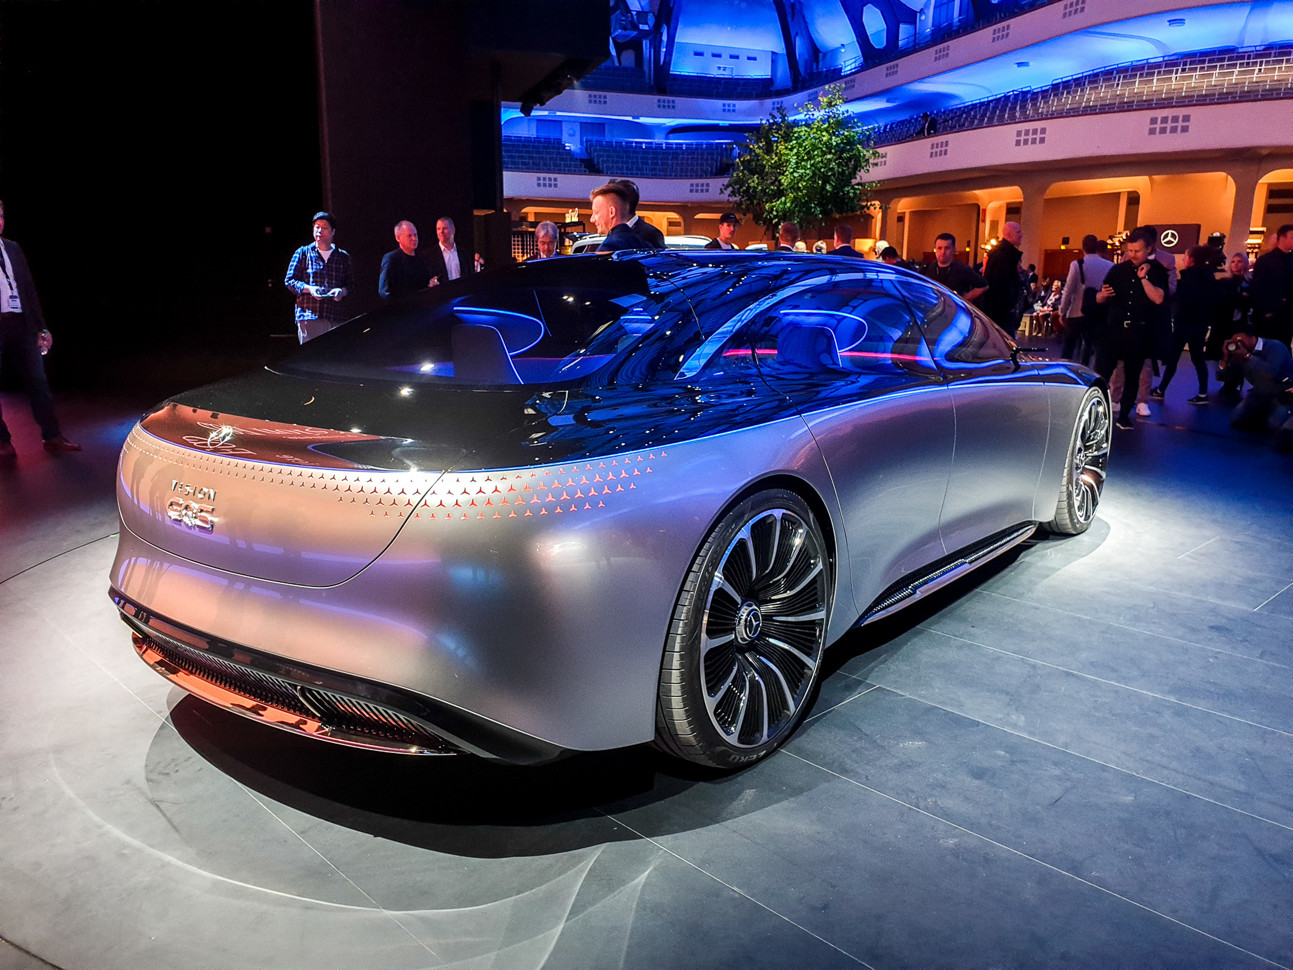 Mercedes-Benz has unveiled the Vision EQS Concept a prototype version of its upcoming executive car line